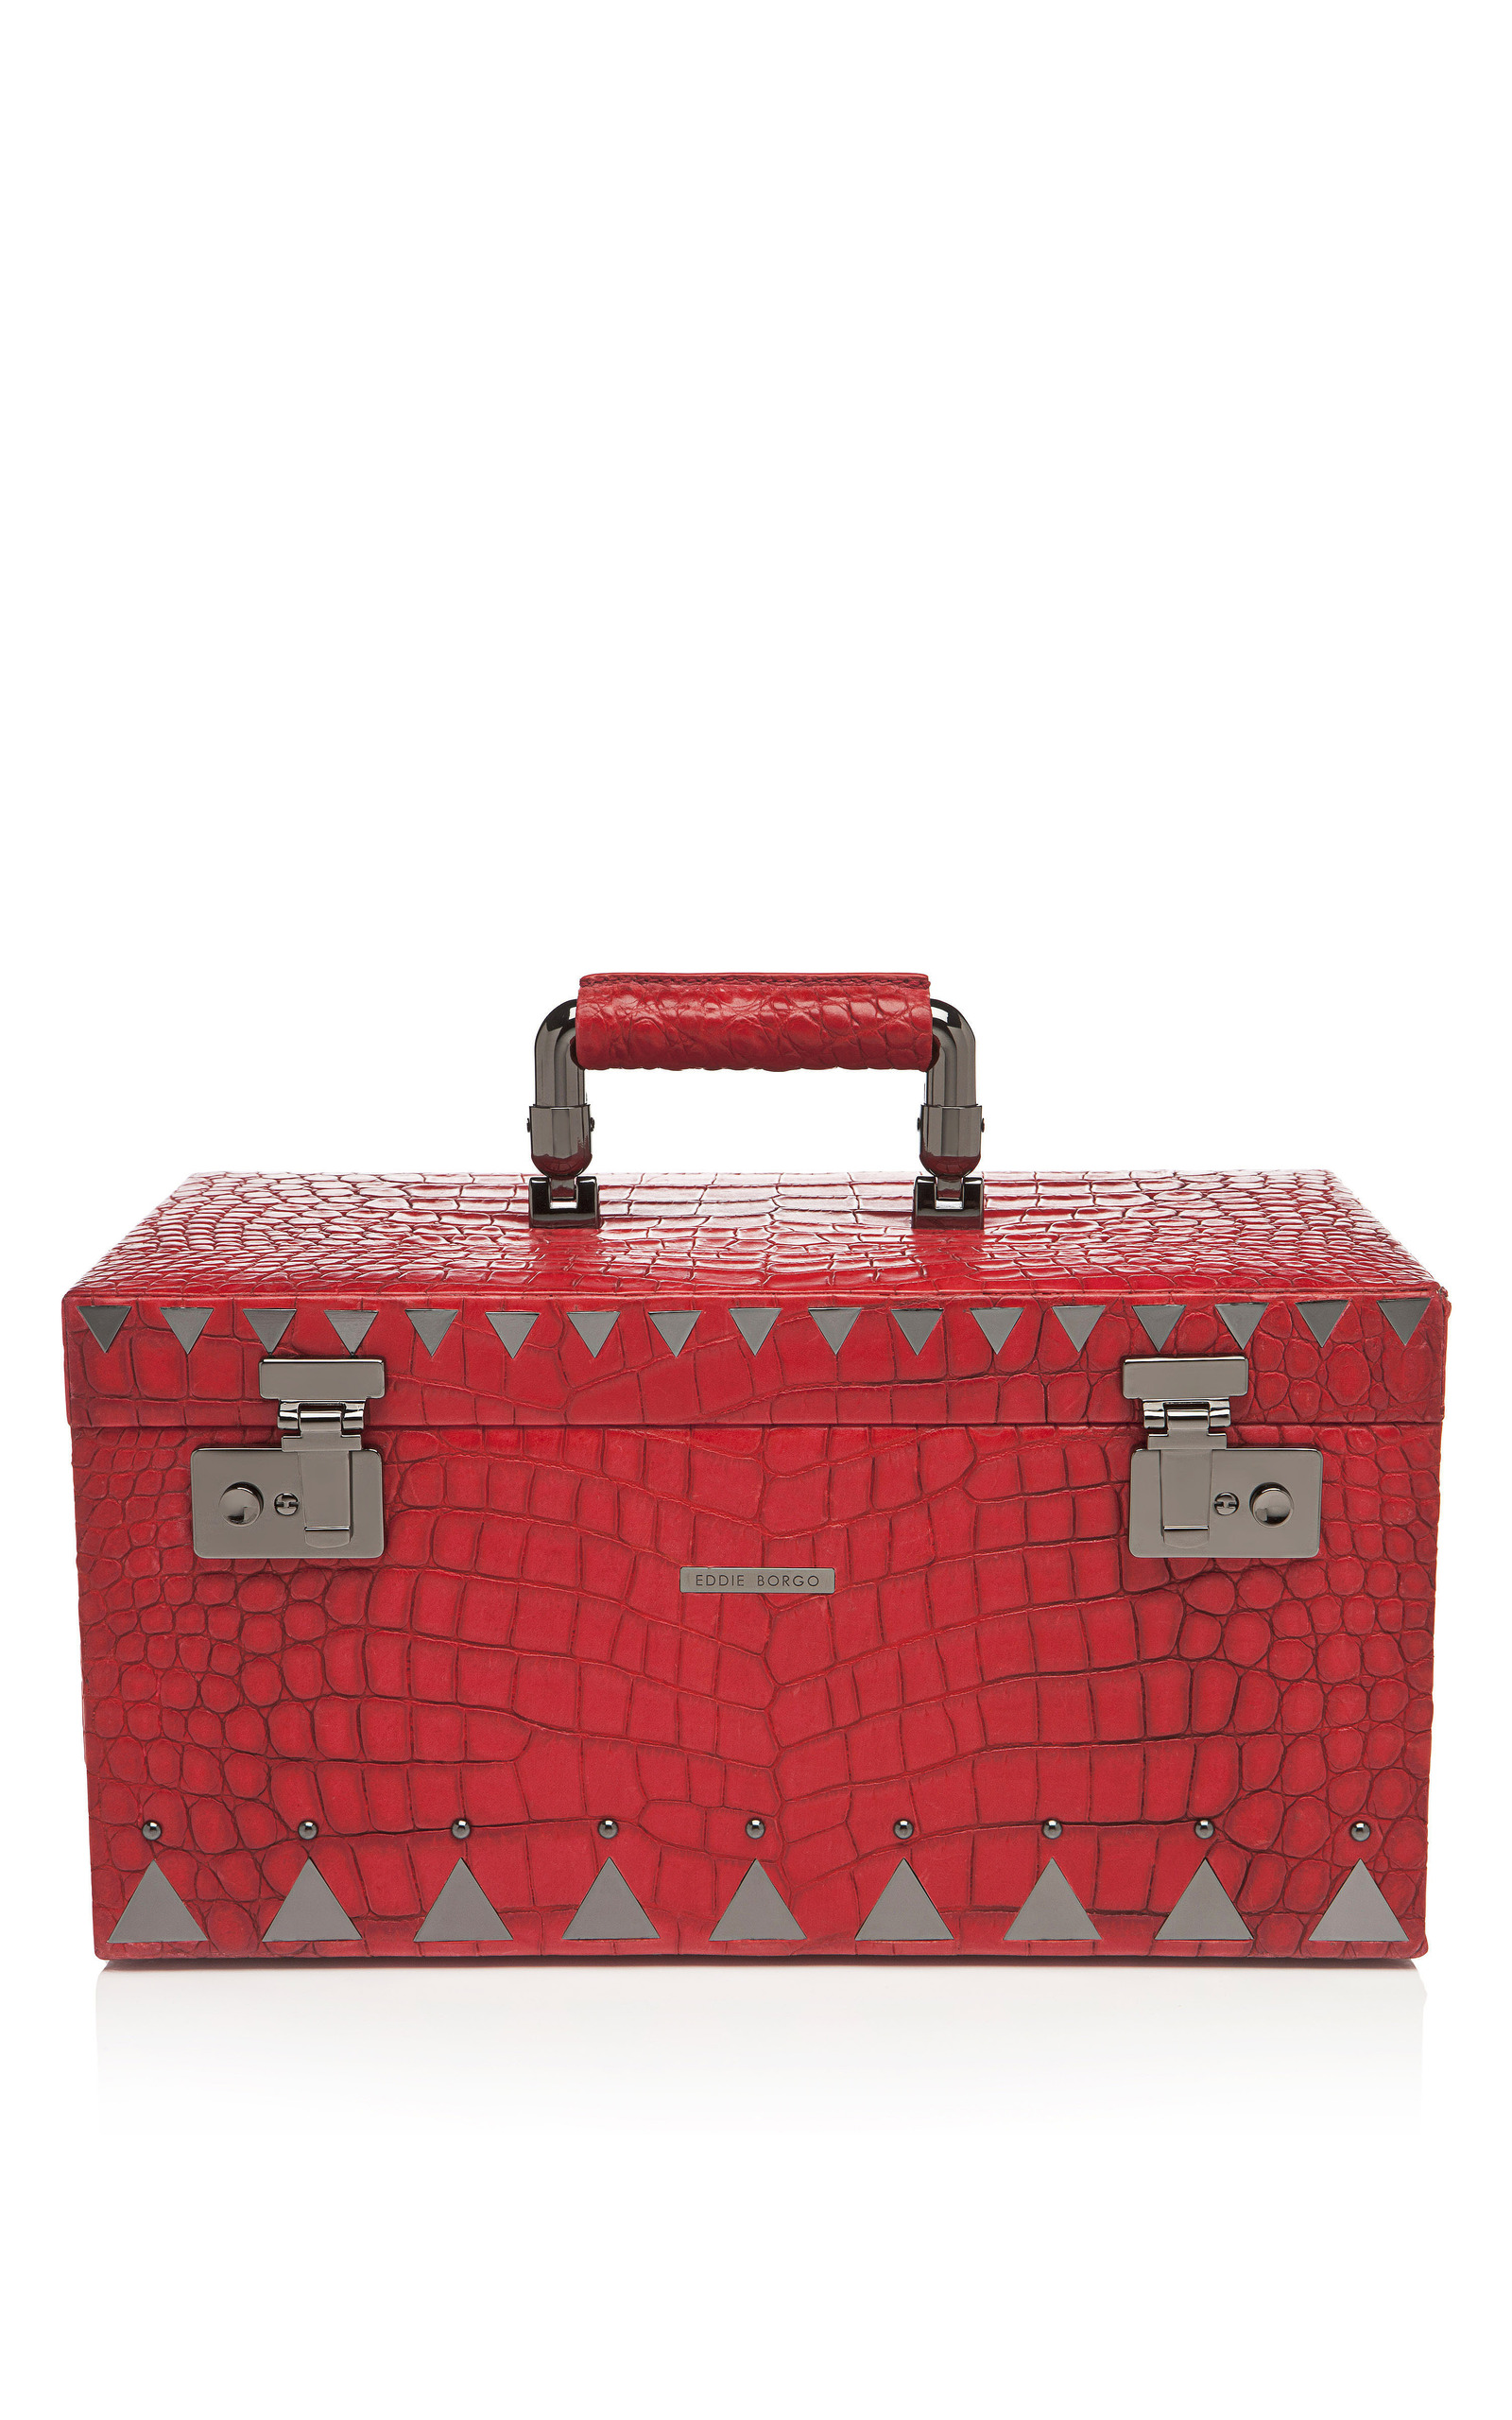 CrocodileEmbossed Leather Jewelry Box by Eddie Borgo Moda Operandi